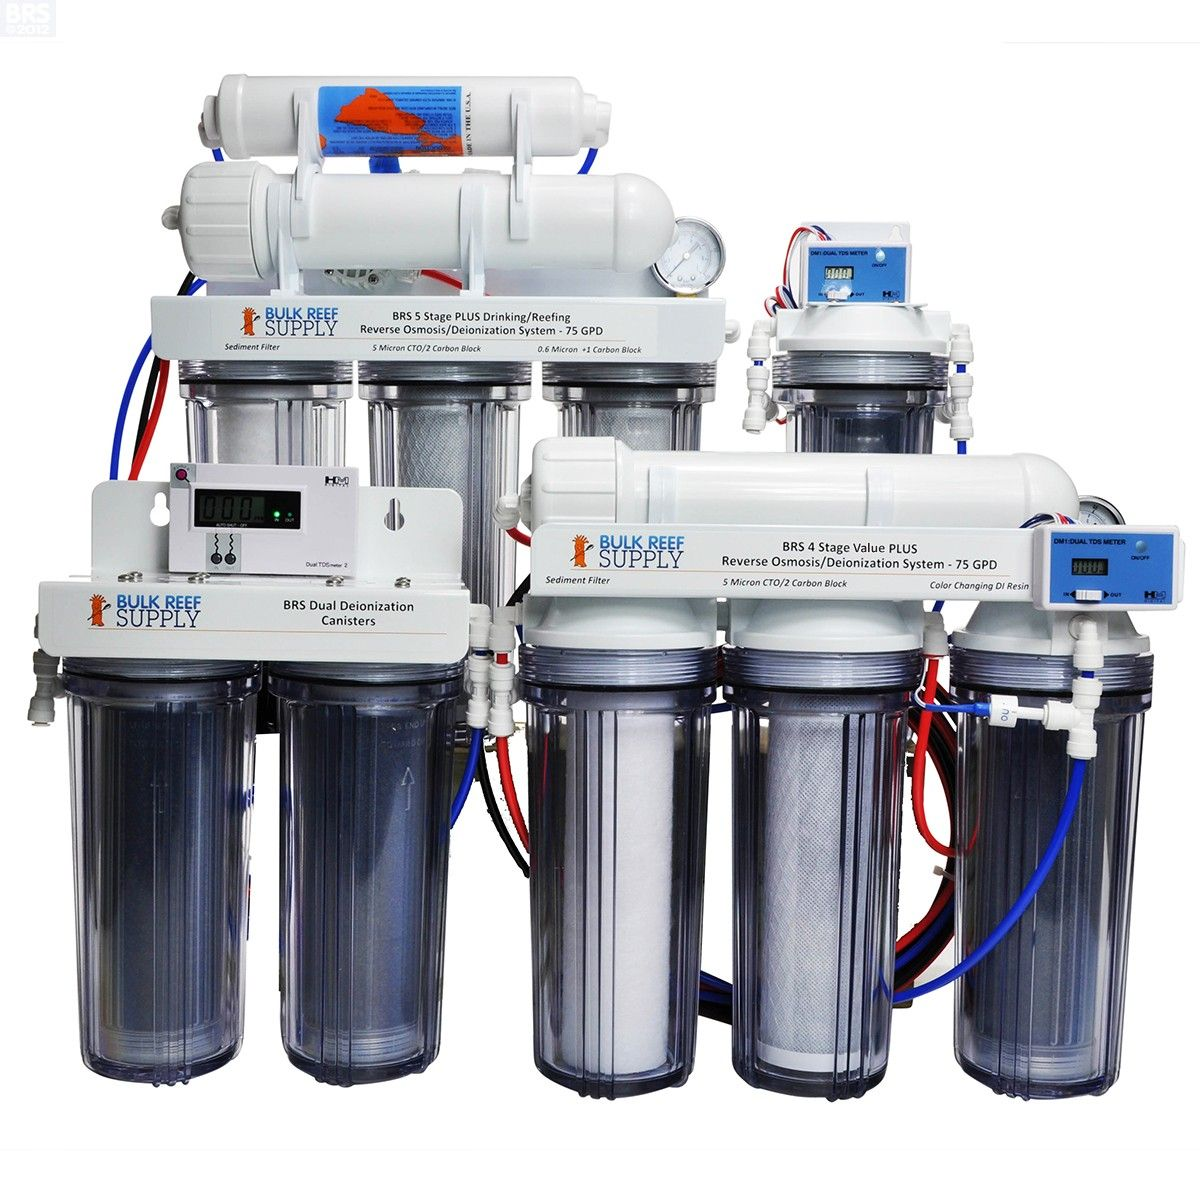 Build Your Own Reverse Osmosis System - Bulk Reef Supply